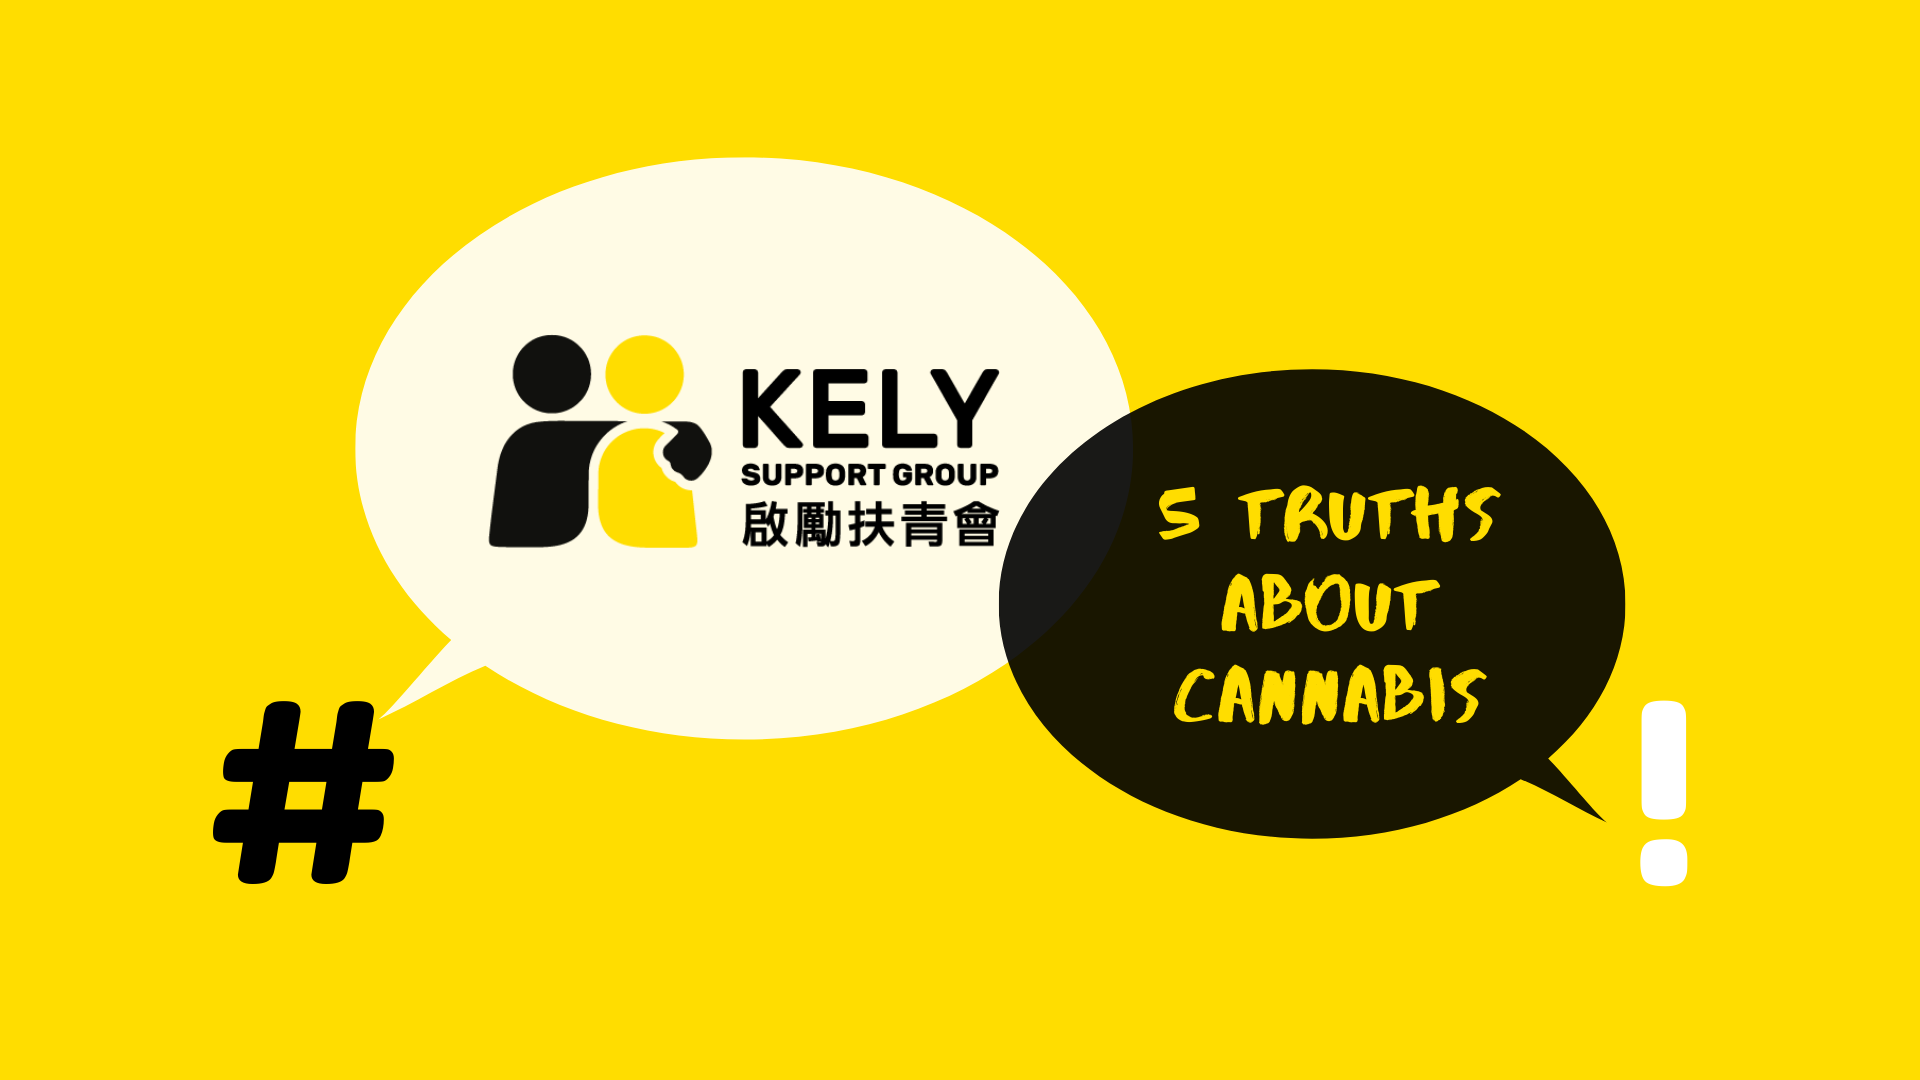 5-Truth-about-Cannabis.png#asset:2854